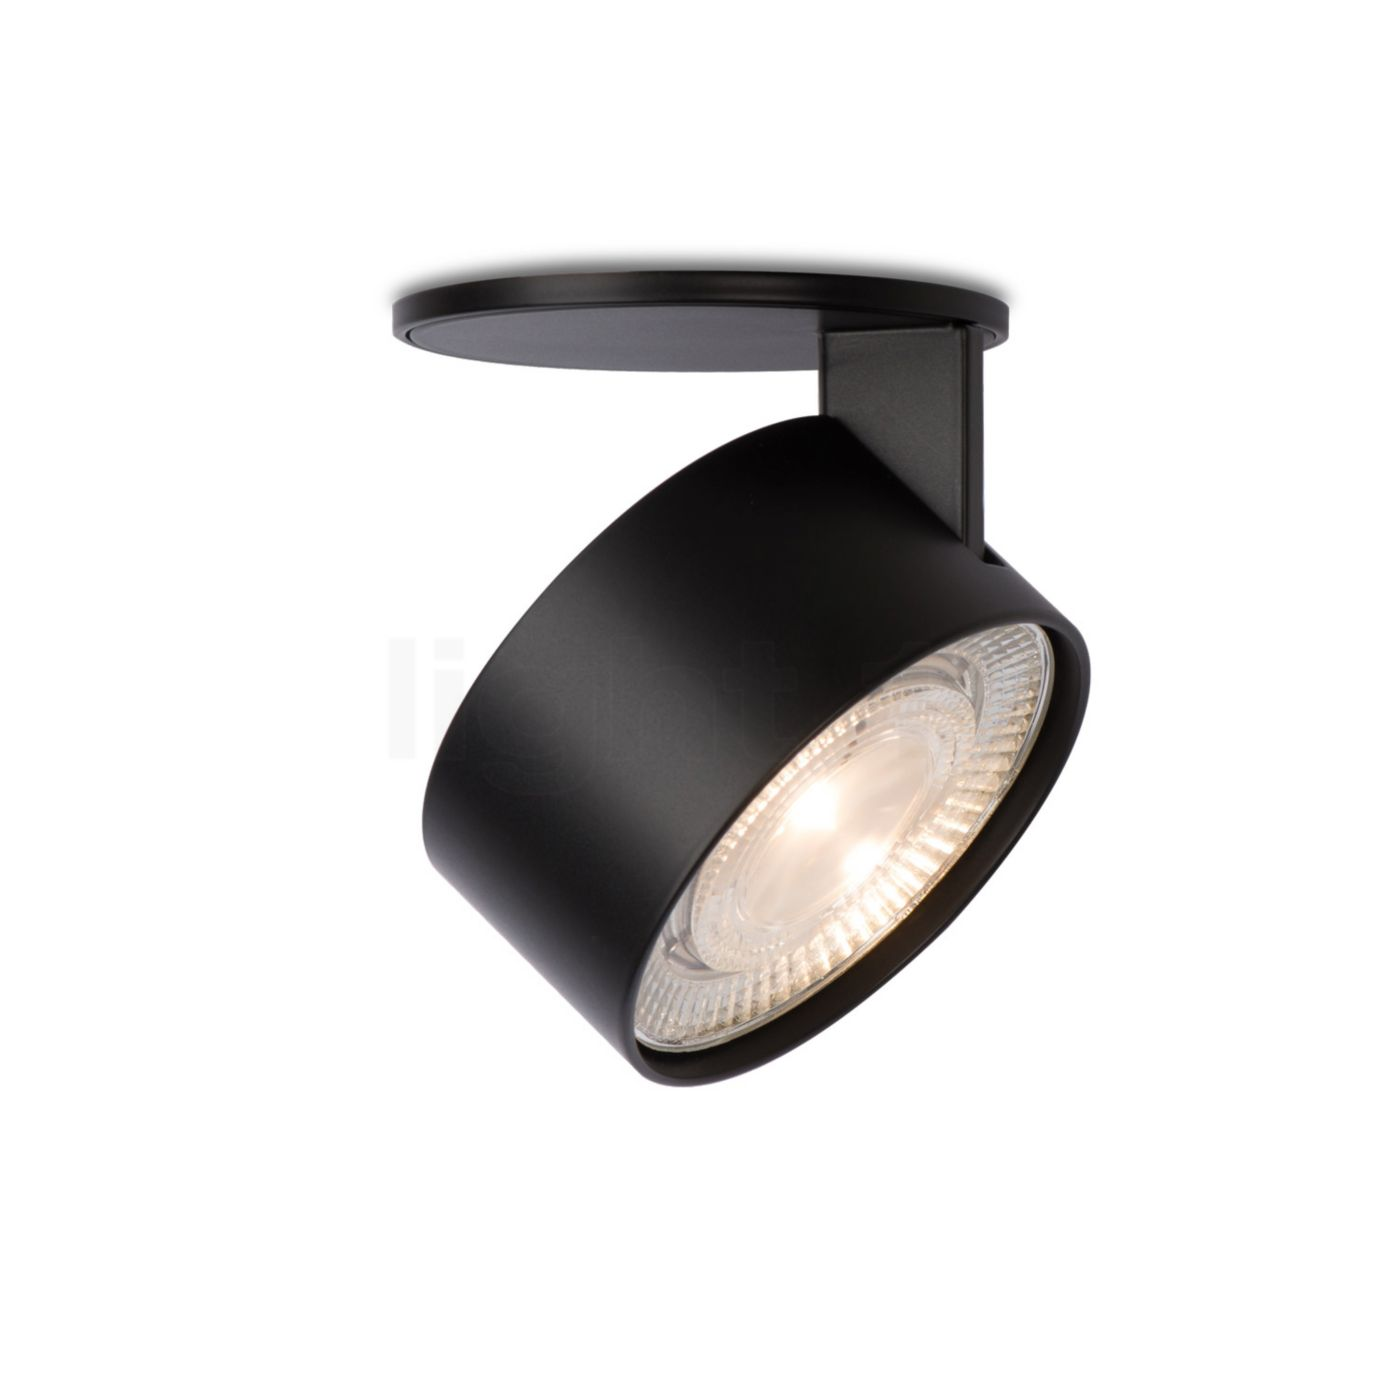 Mawa design wittenberg 40 recessed ceiling light round with cover mawa design wittenberg 40 recessed ceiling light round with cover plate led ceiling lights arubaitofo Image collections